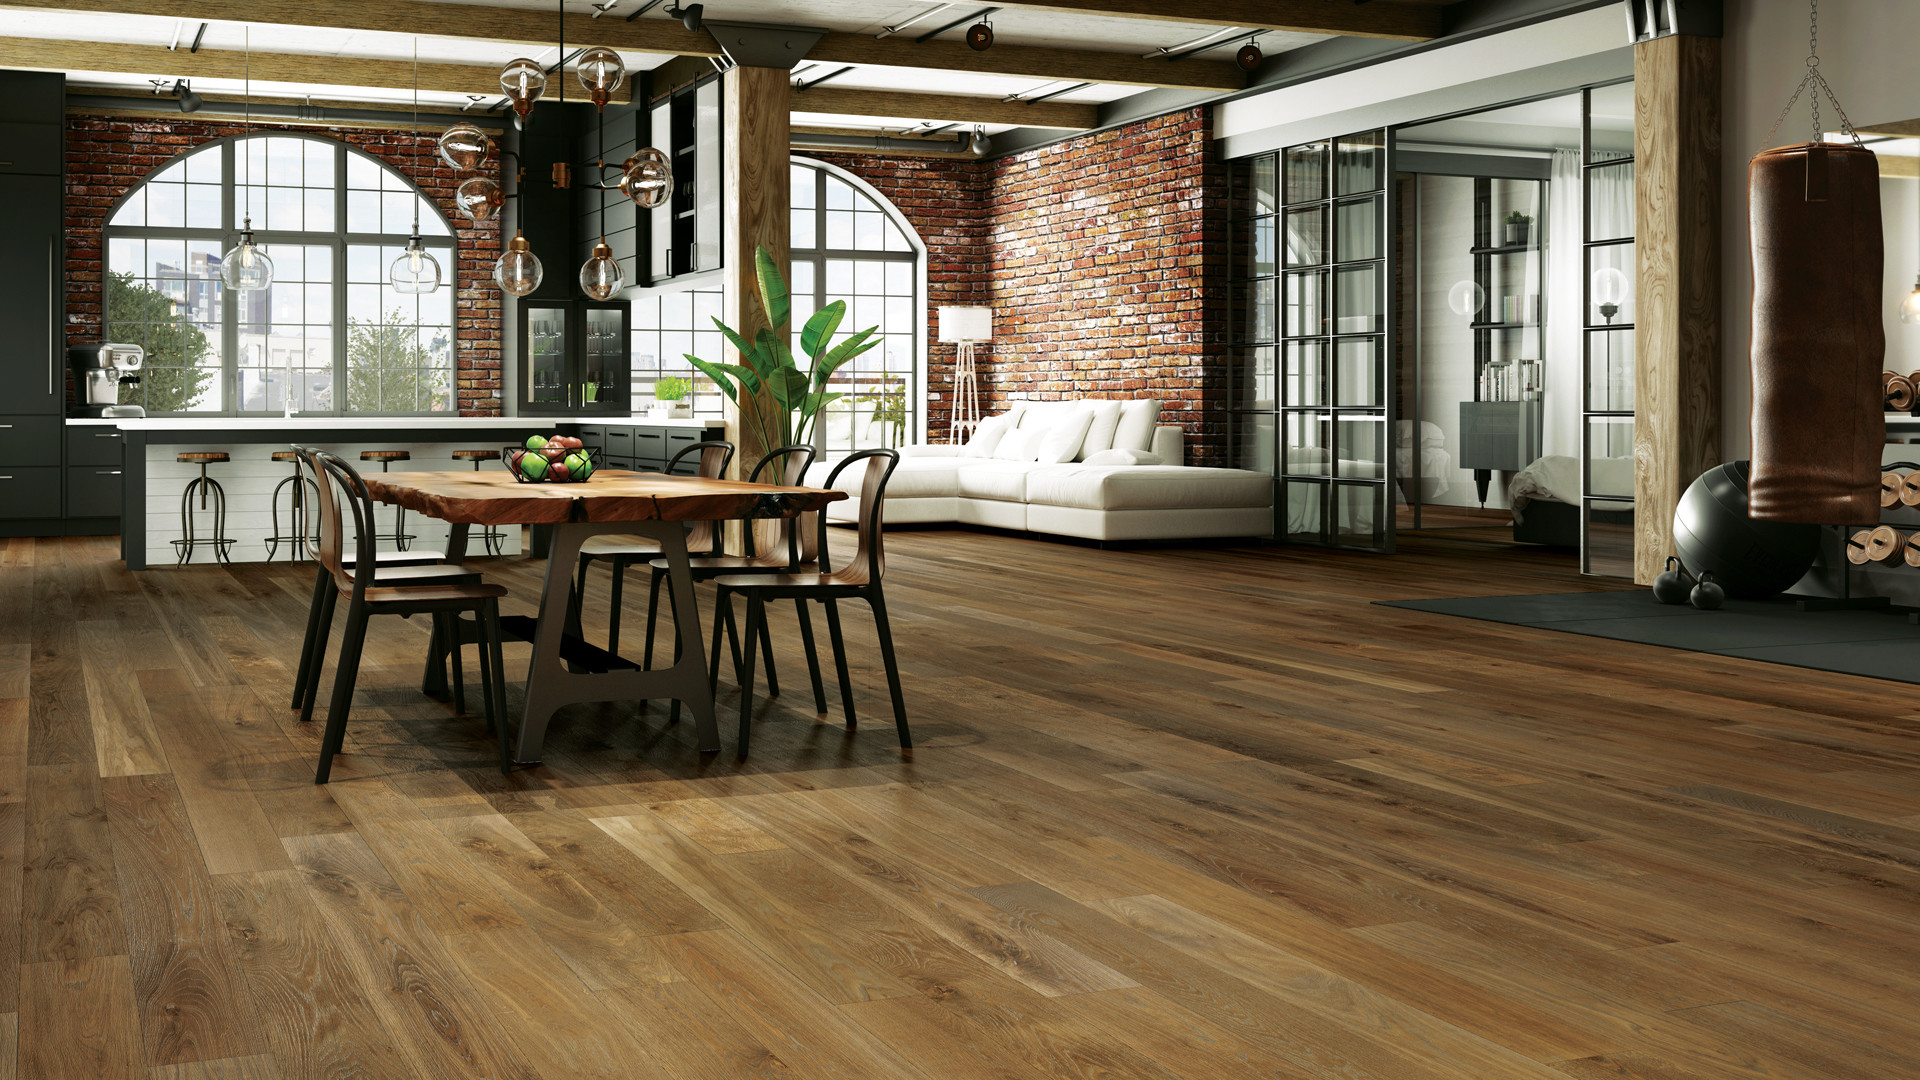 cheap hardwood flooring canada of 4 latest hardwood flooring trends of 2018 lauzon flooring regarding combined with a wire brushed texture and an ultra matte sheen these new 7a½ wide white oak hardwood floors will definitely add character to your home